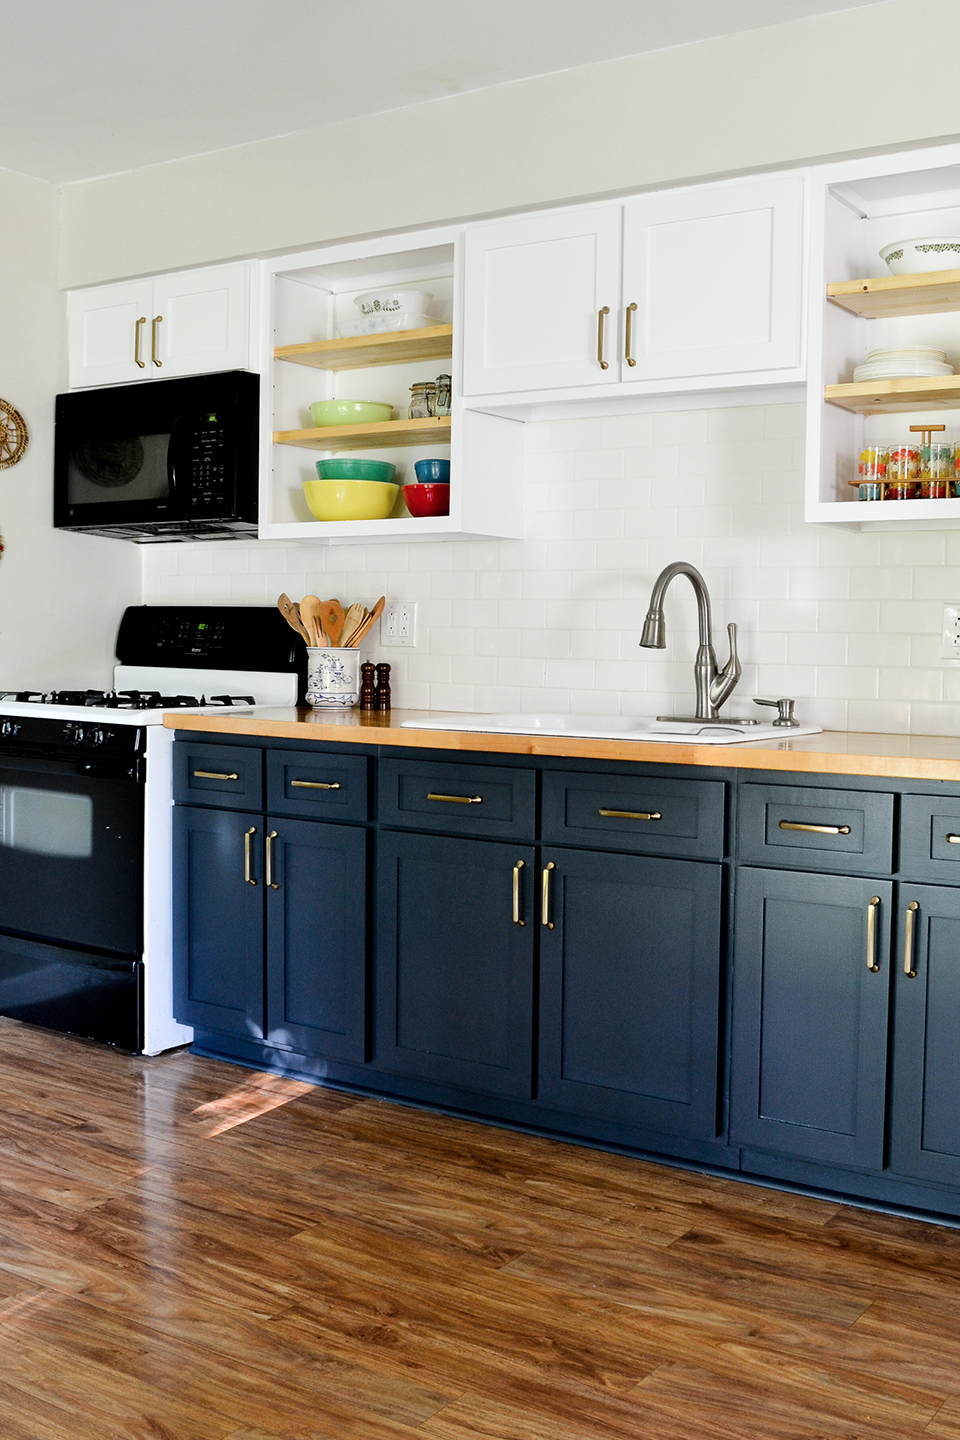 5 Low Cost Ideas For A Kitchen Remodel On A Budget With Images